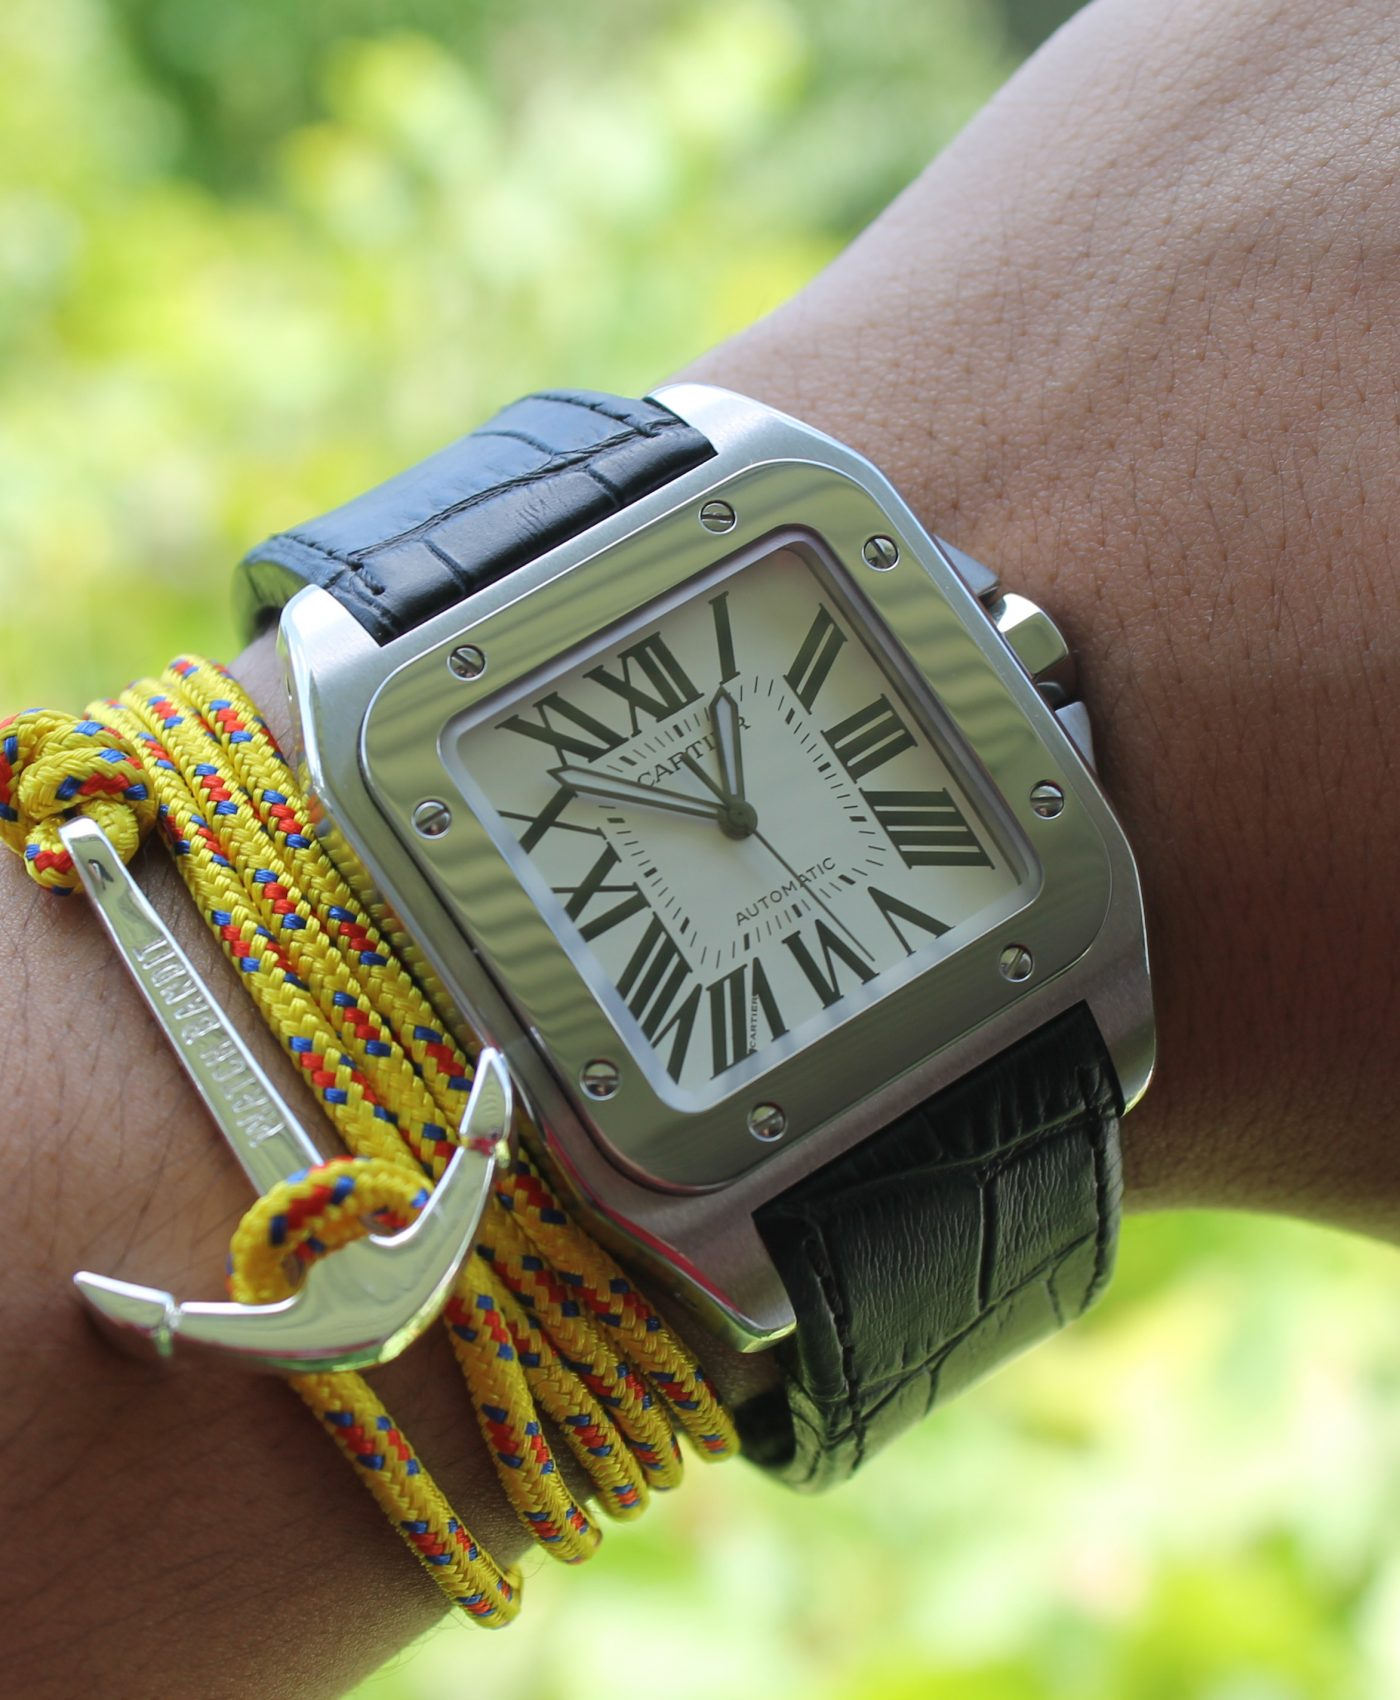 Cartier and anchor bracelet by abewd